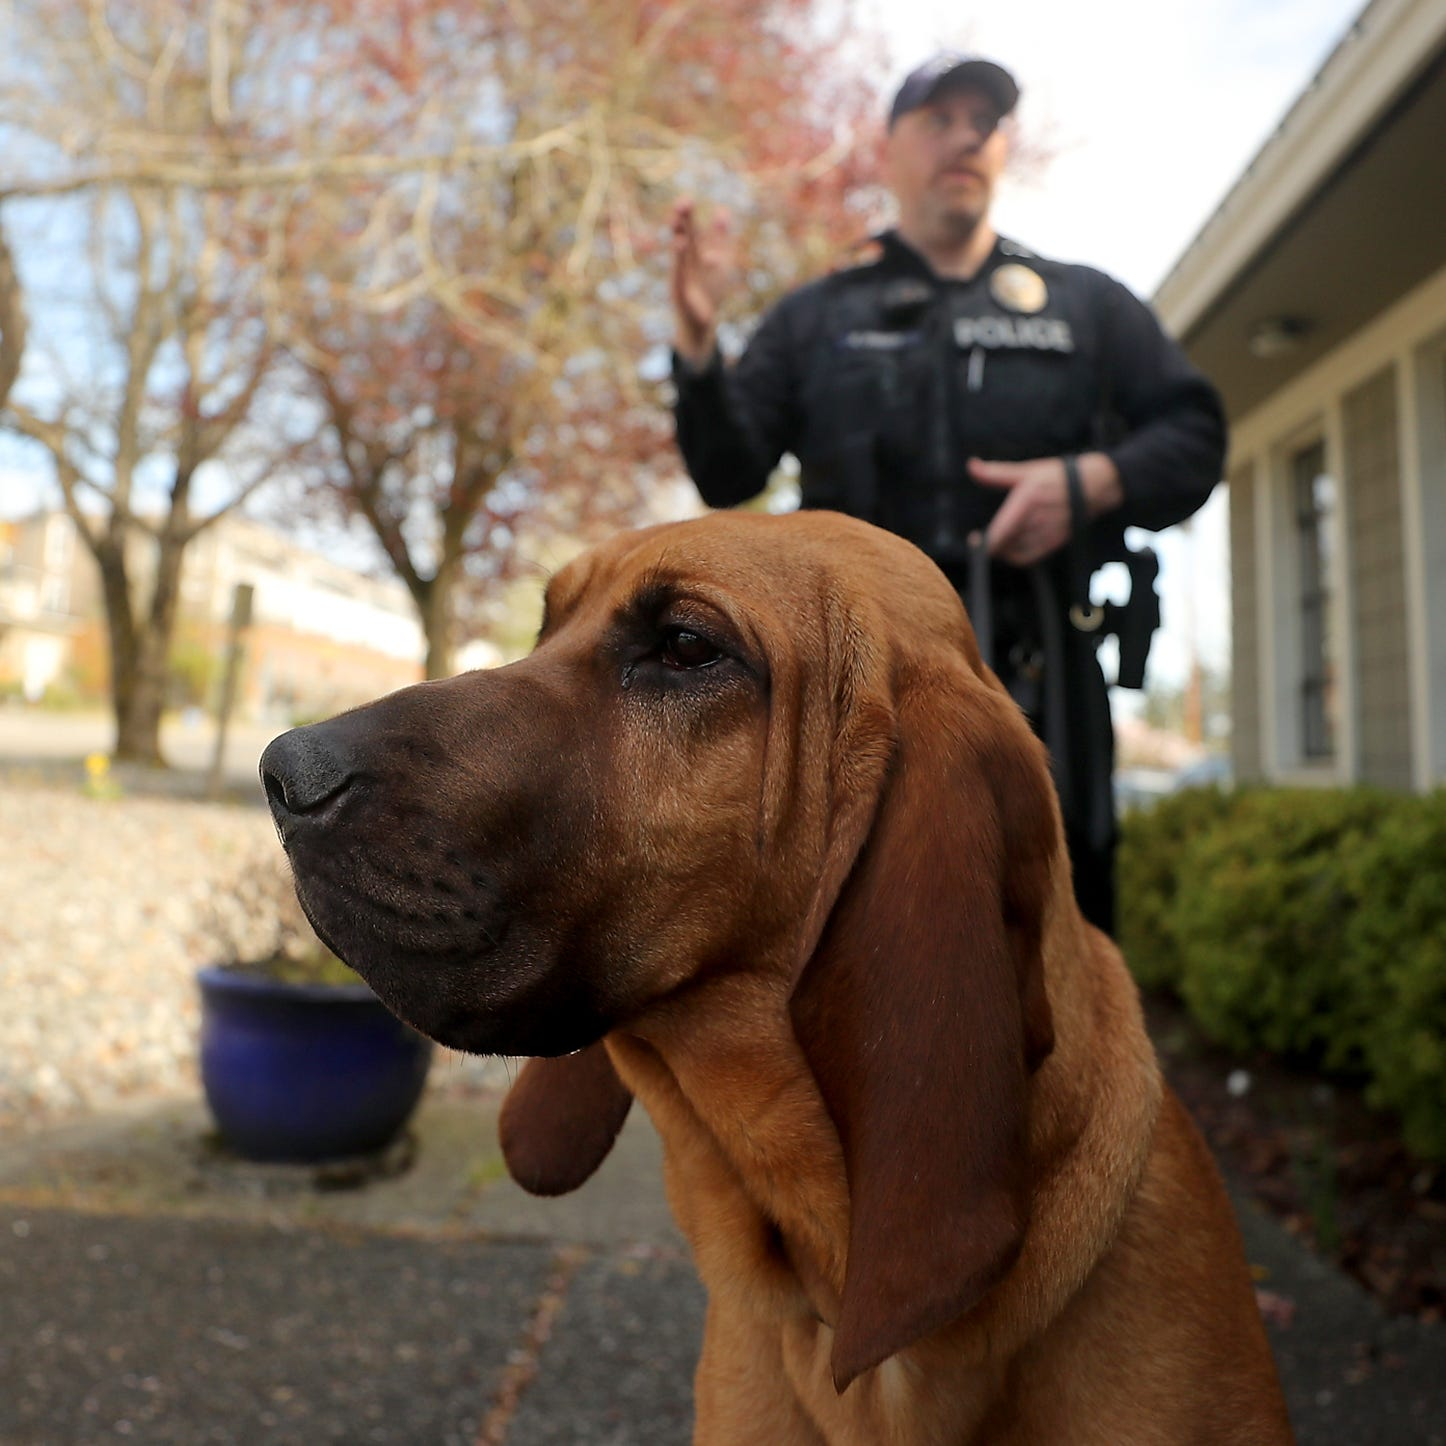 Meet K9 Whitney, a nosy new officer for the Bainbridge Island Police Department